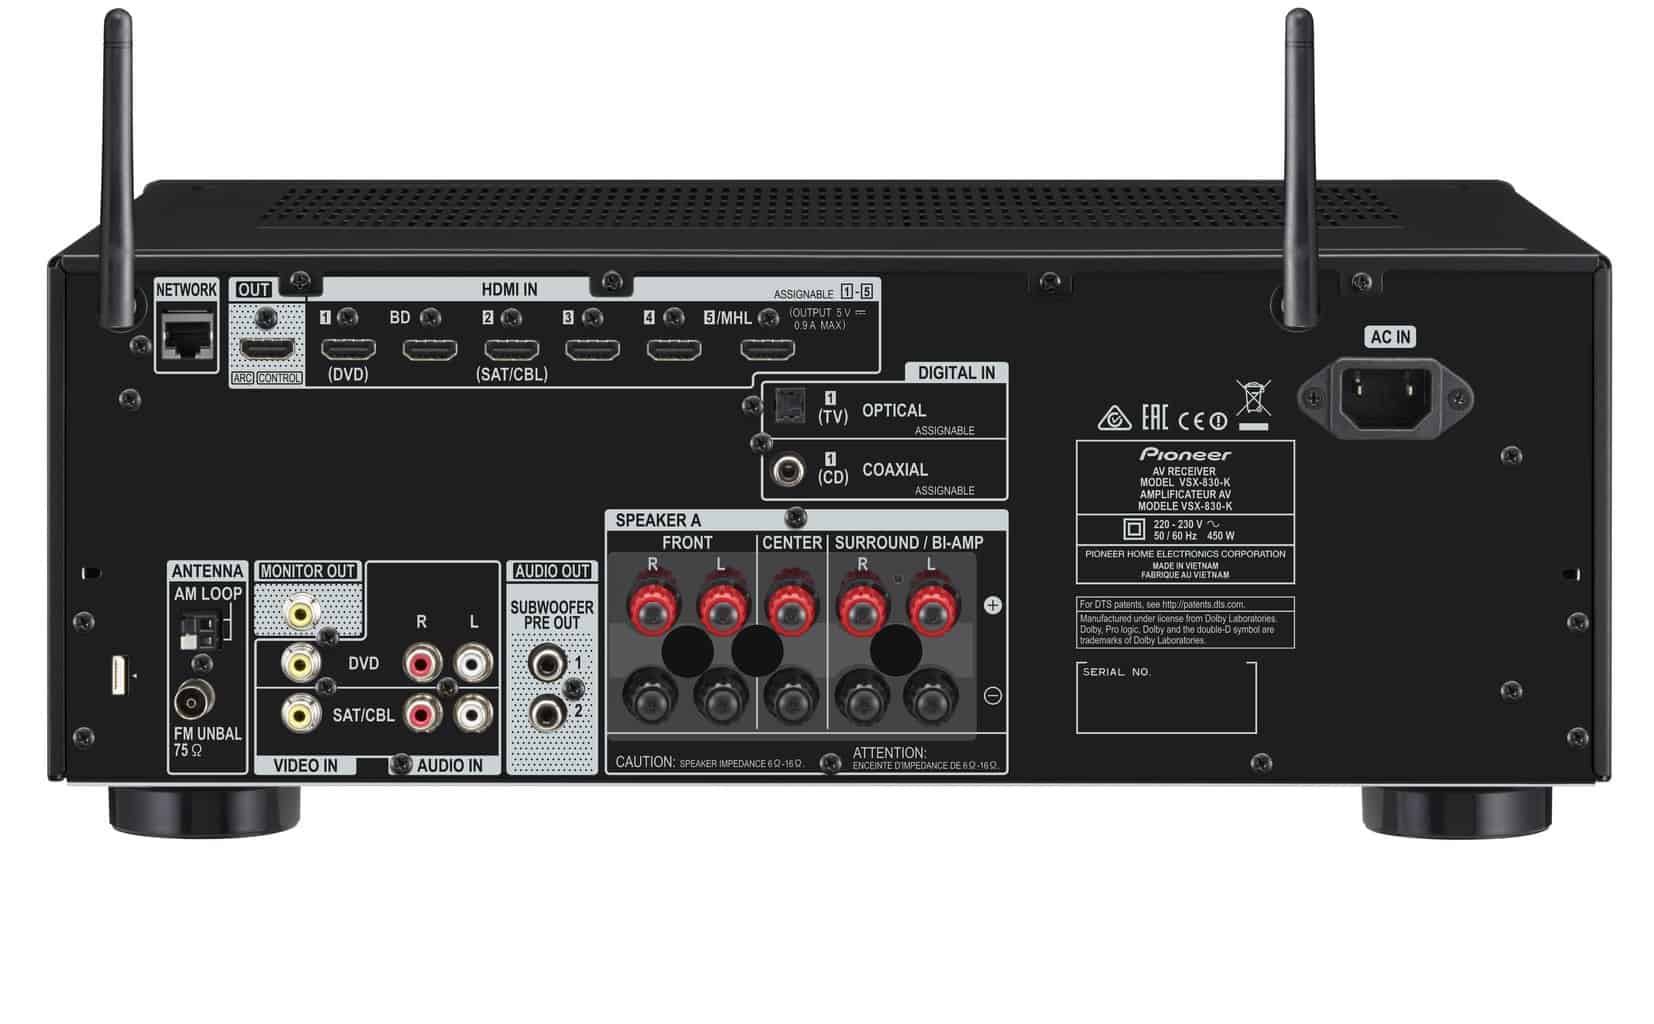 How To Play Airplay On Yamaha Receiver